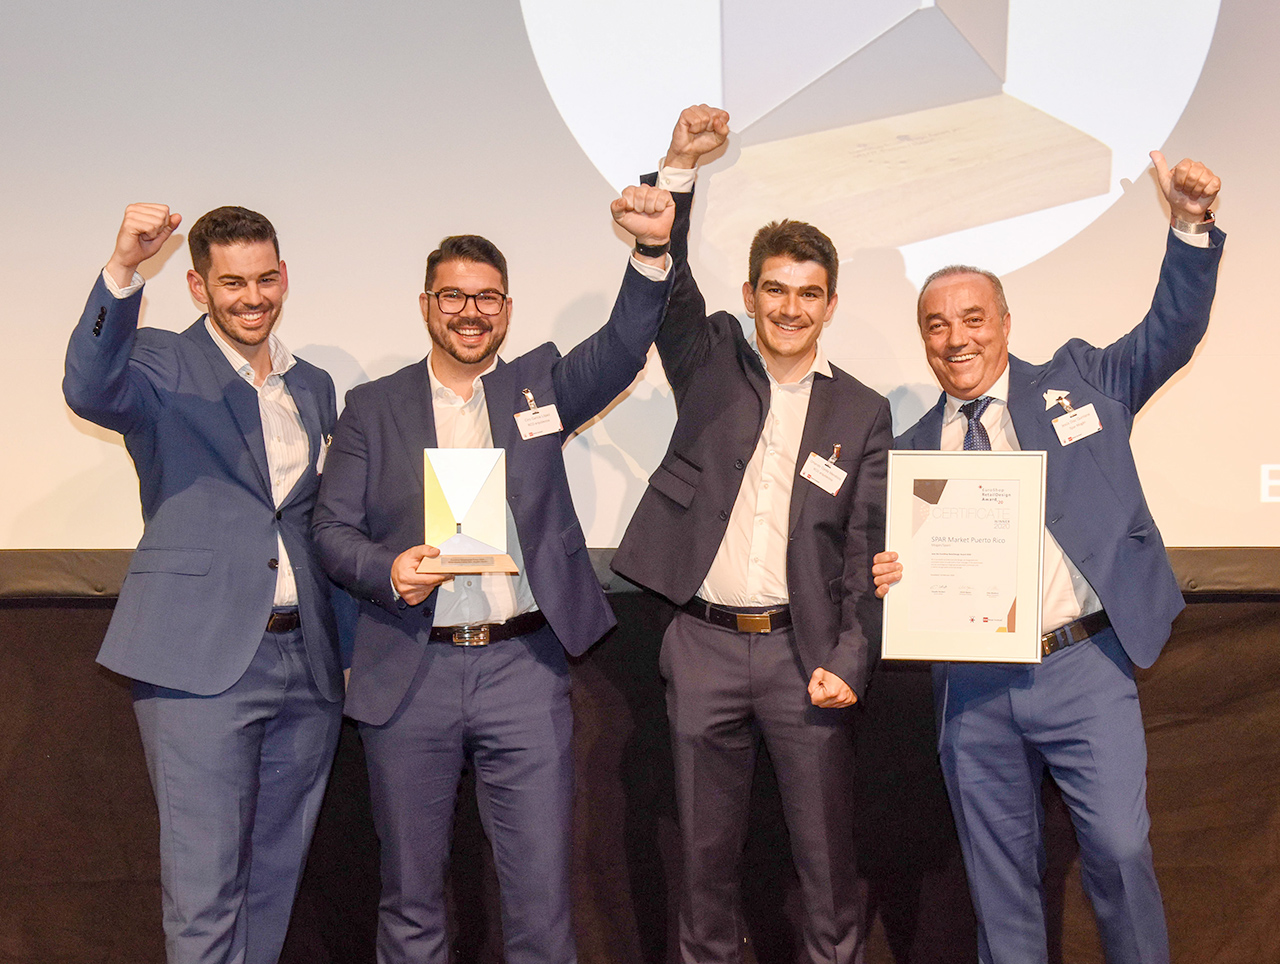 Winners EuroShop RetailDesign Award 2020